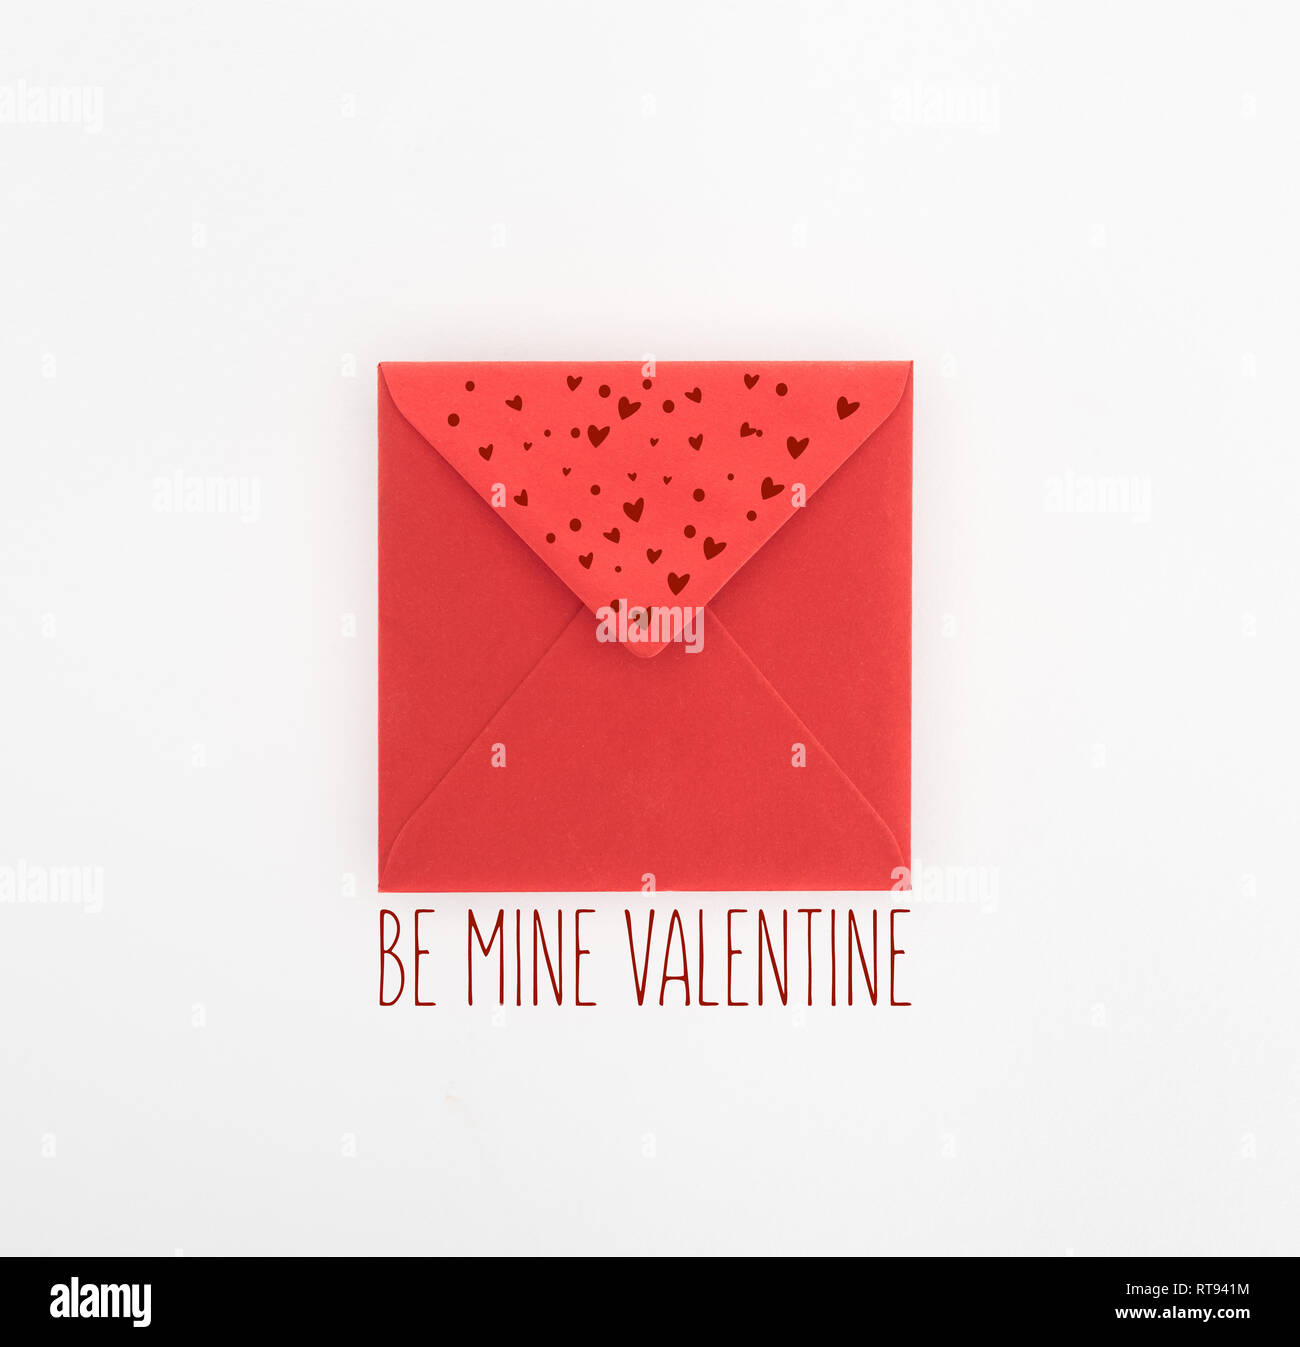 flat lay with red envelope isolated on white, st valentine day concept with 'be mine valentine' lettering - Stock Image